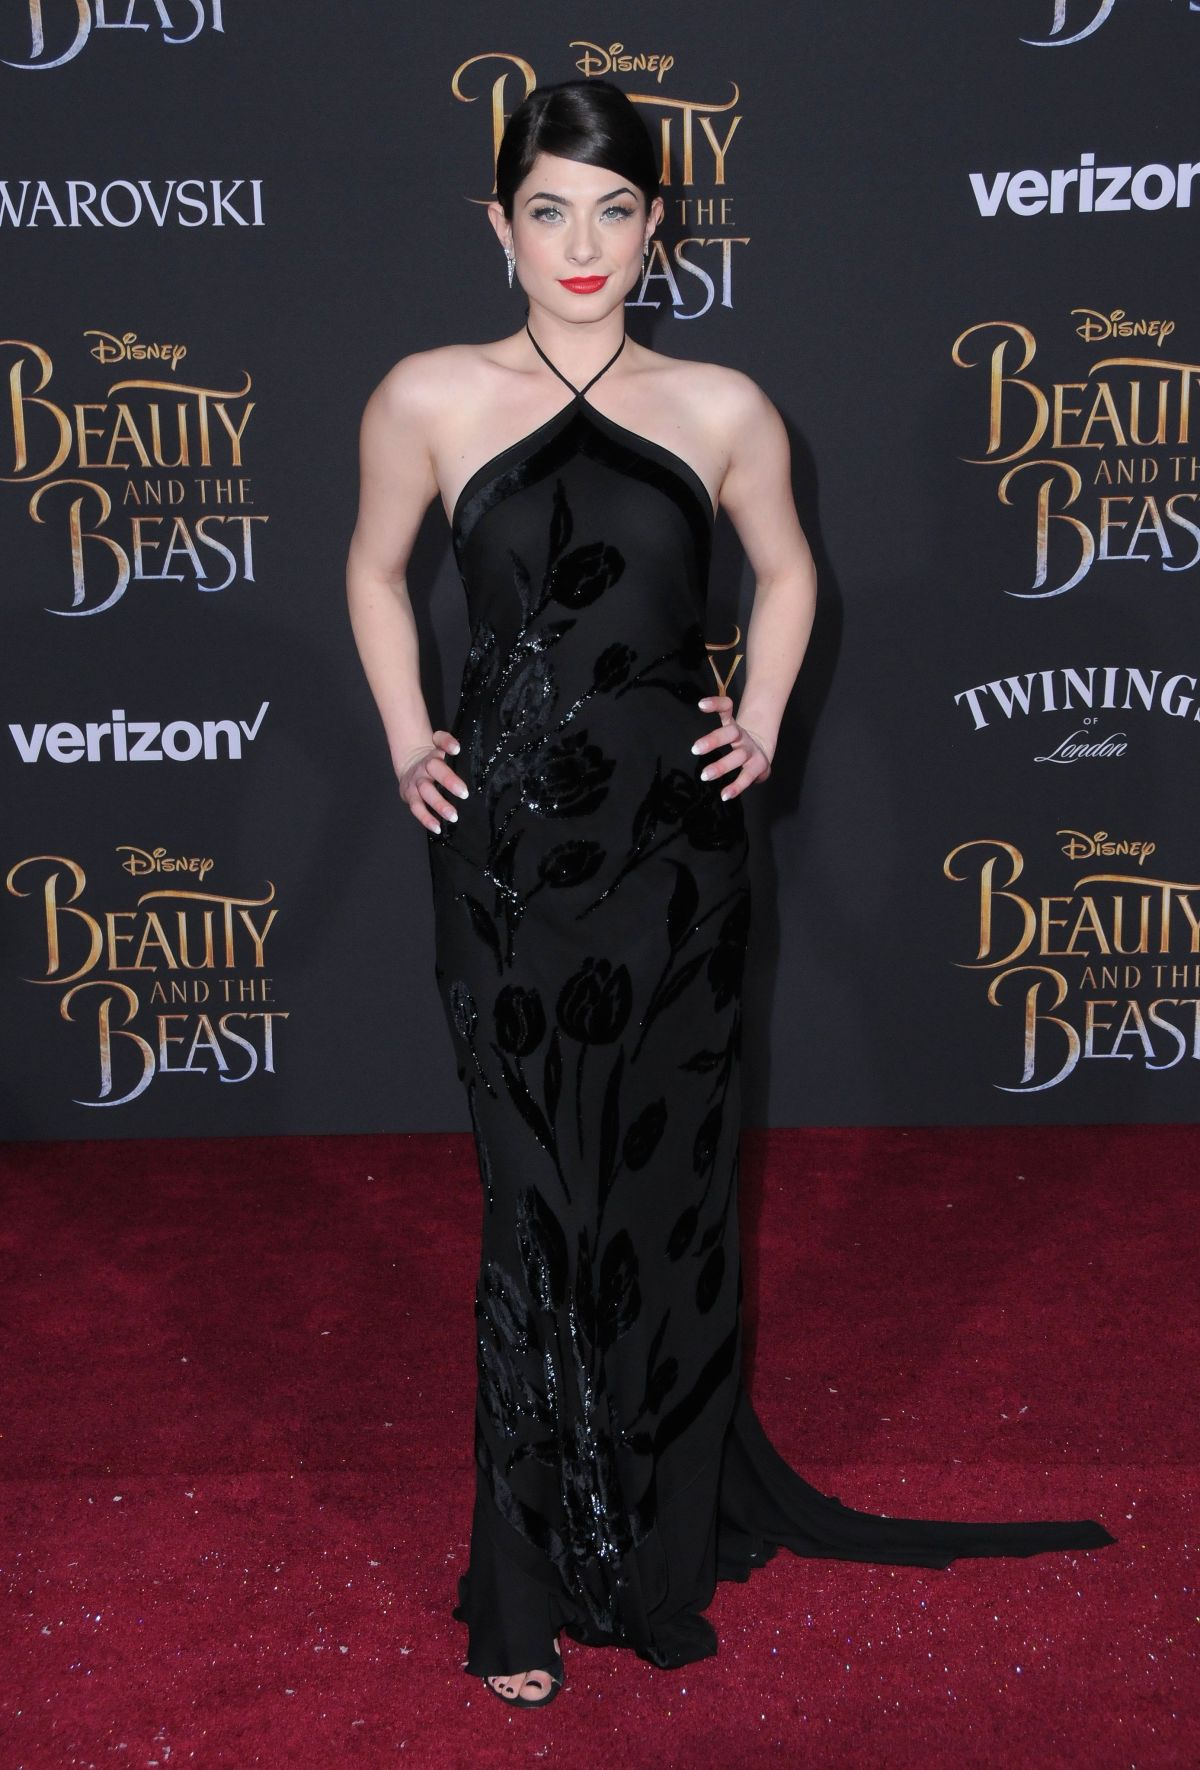 NIKKI KOSS at Beauty and the Beast Premiere in Los Angeles 03/02/2017